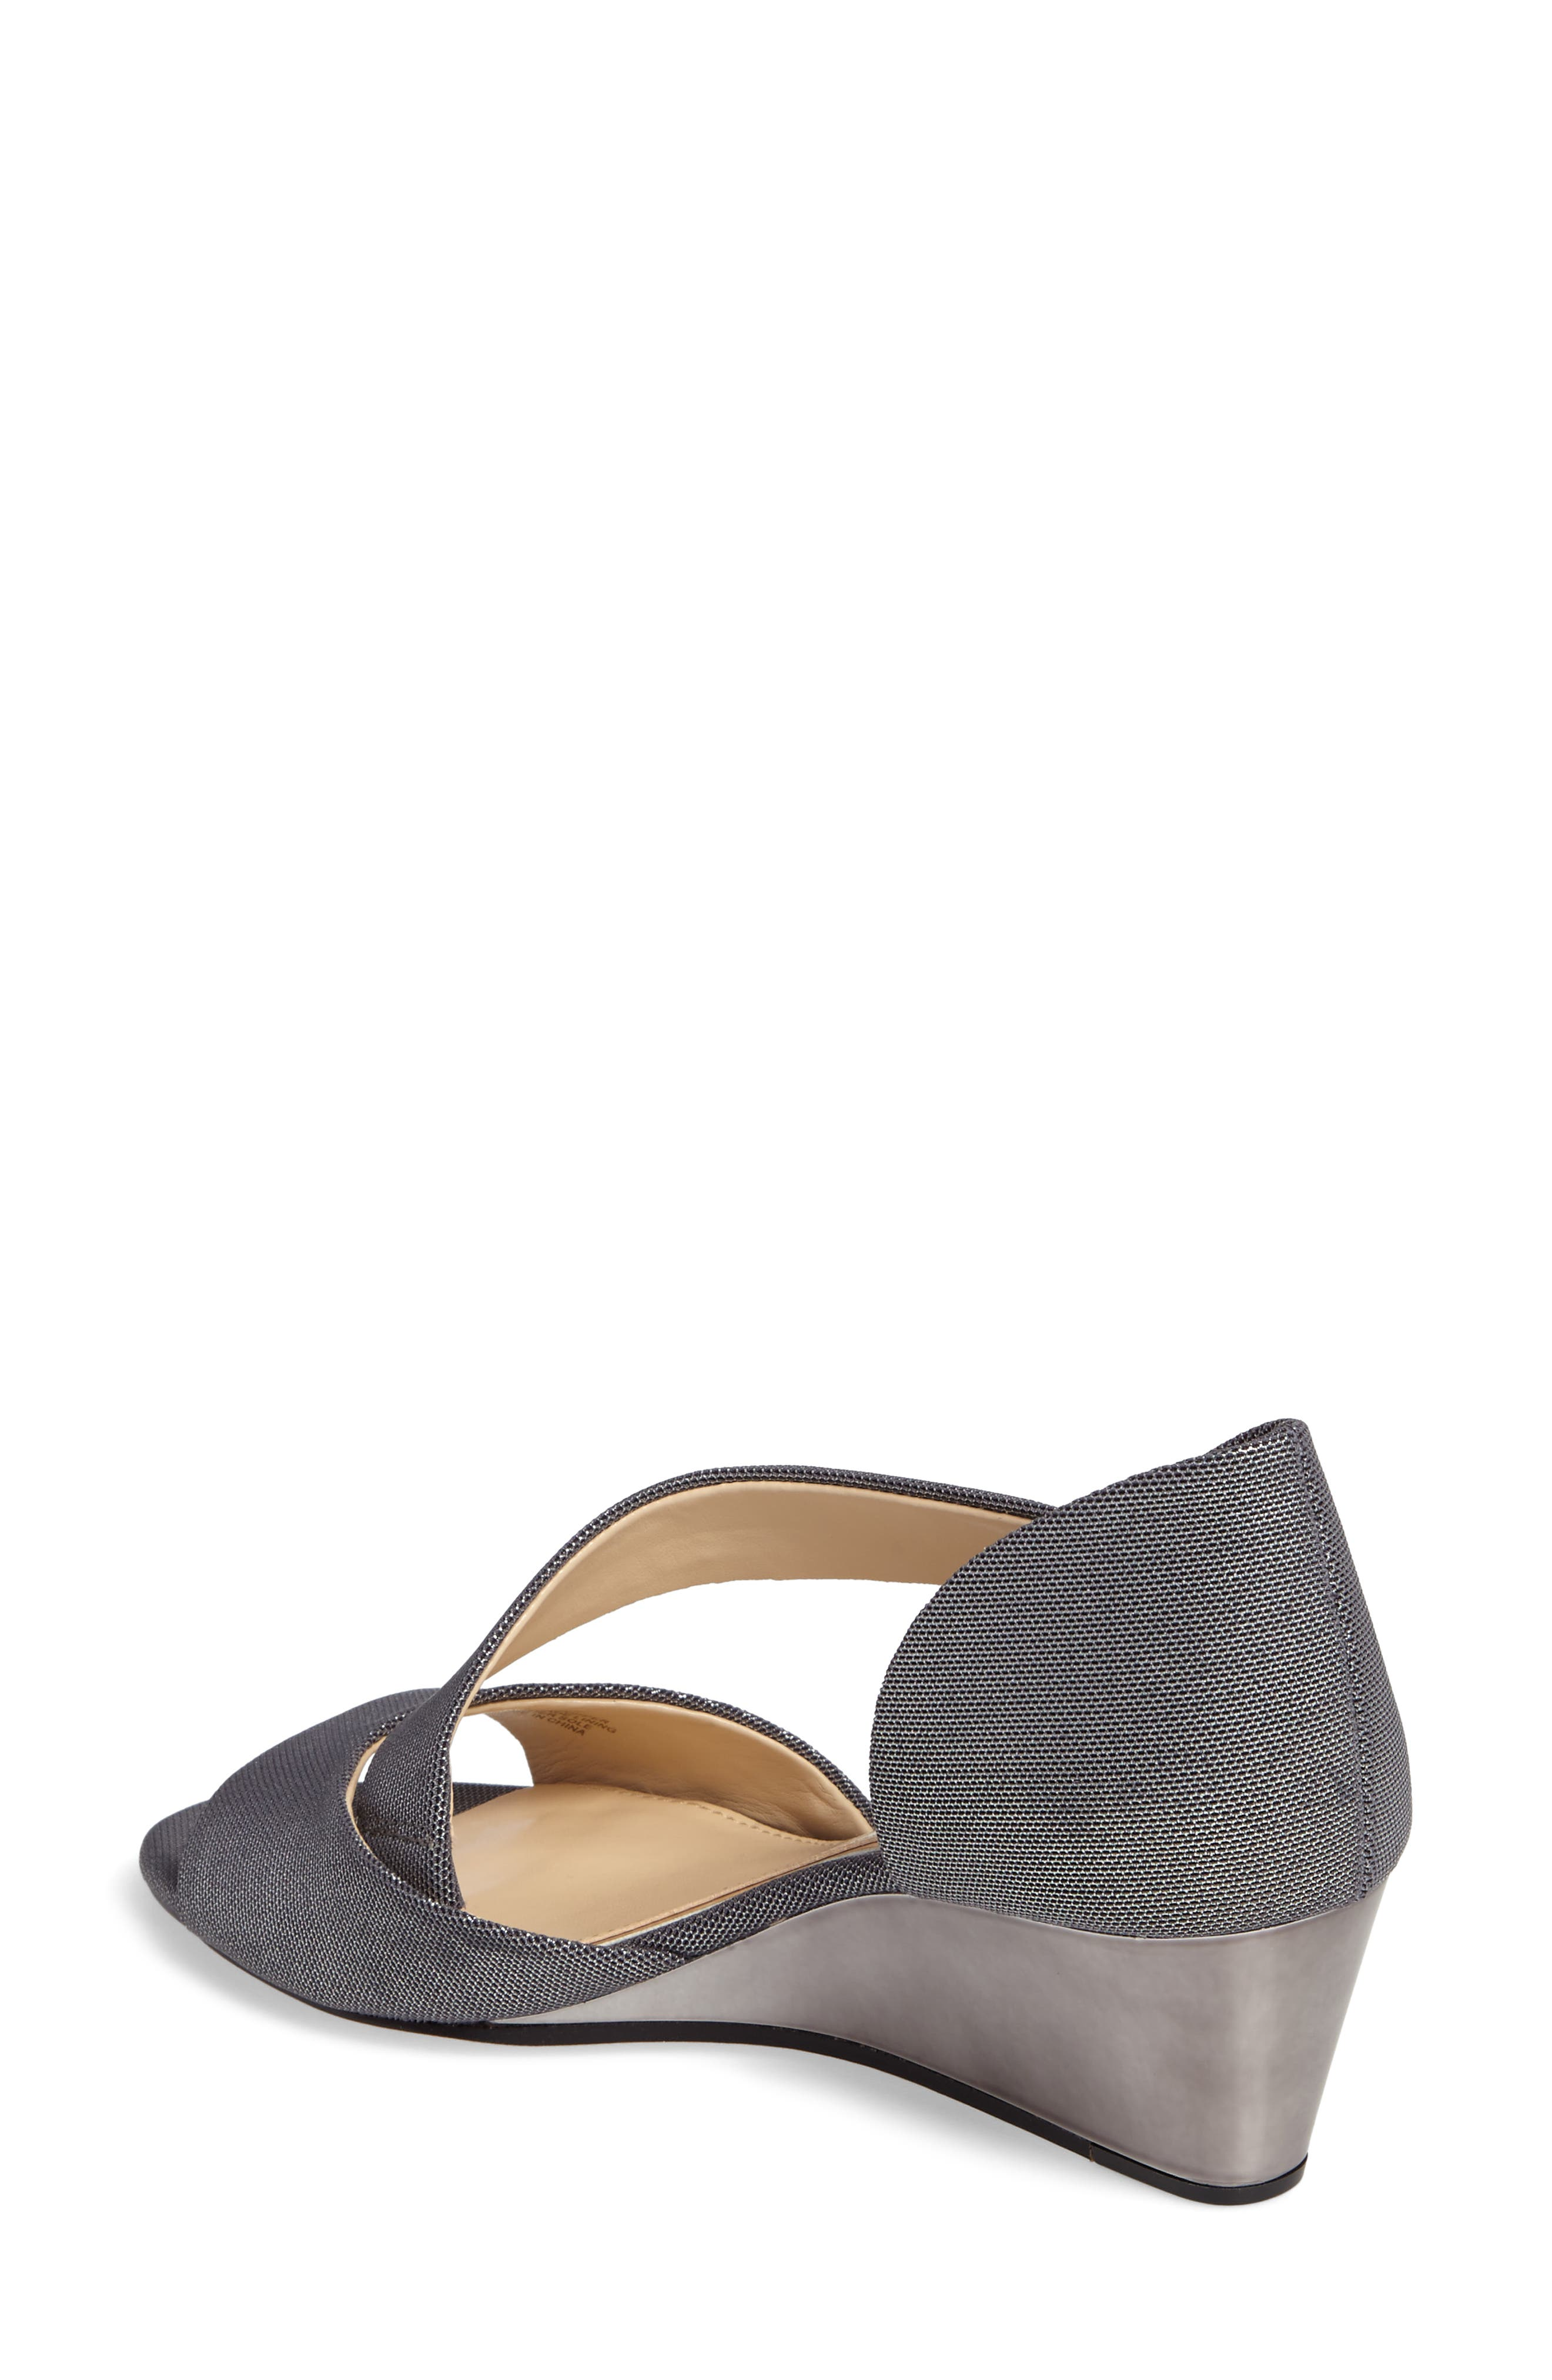 Jefre Wedgee Sandal,                             Alternate thumbnail 2, color,                             Anthracite Fabric